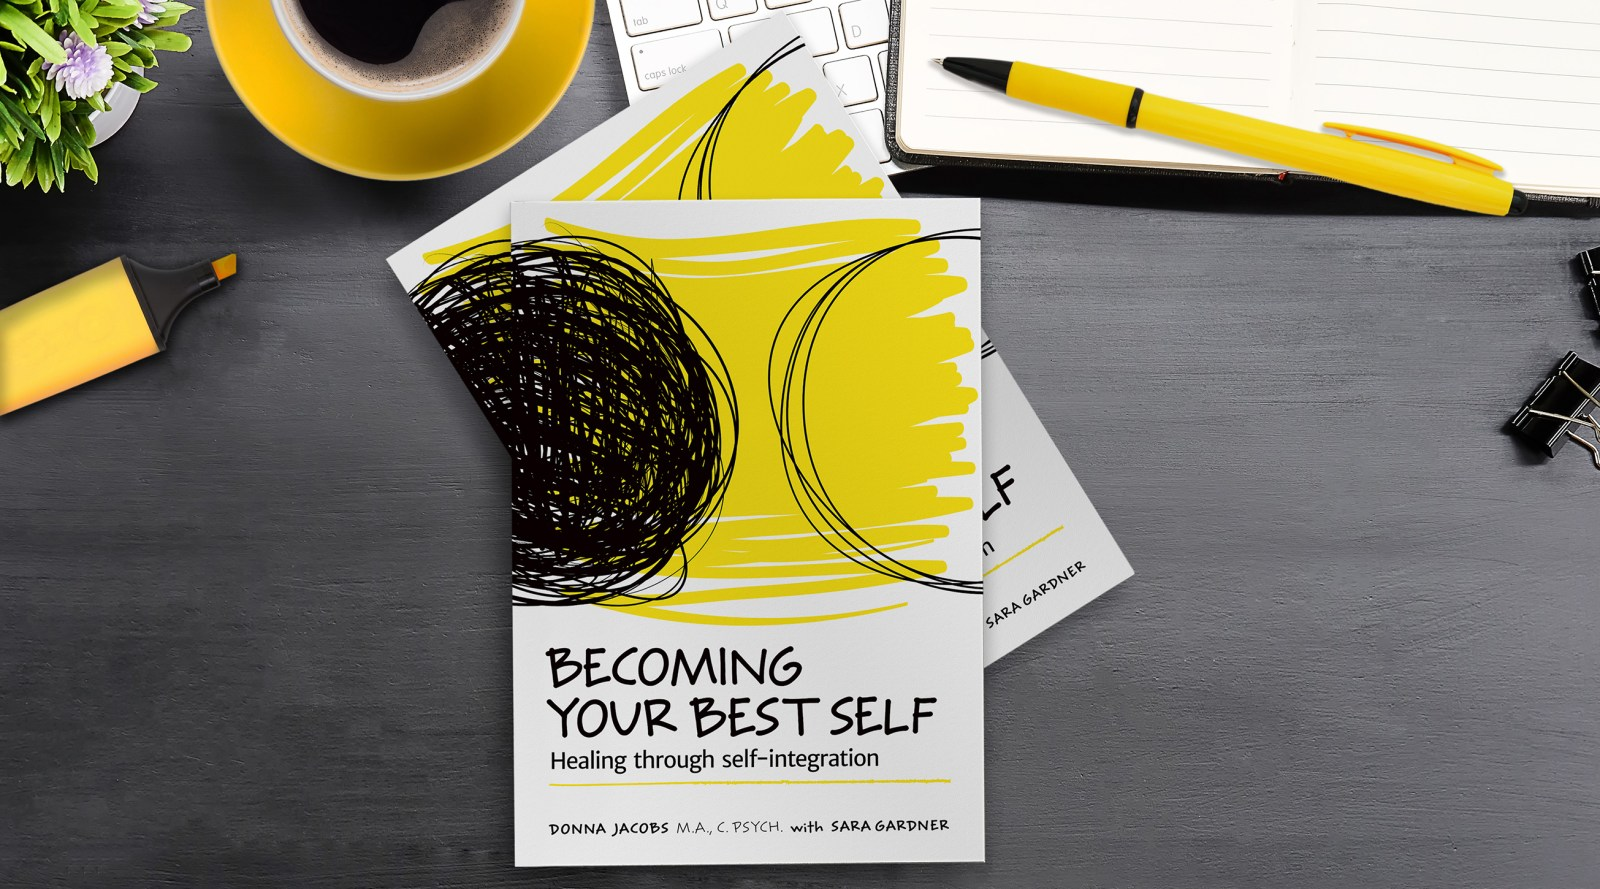 Becoming Your Best Self Book